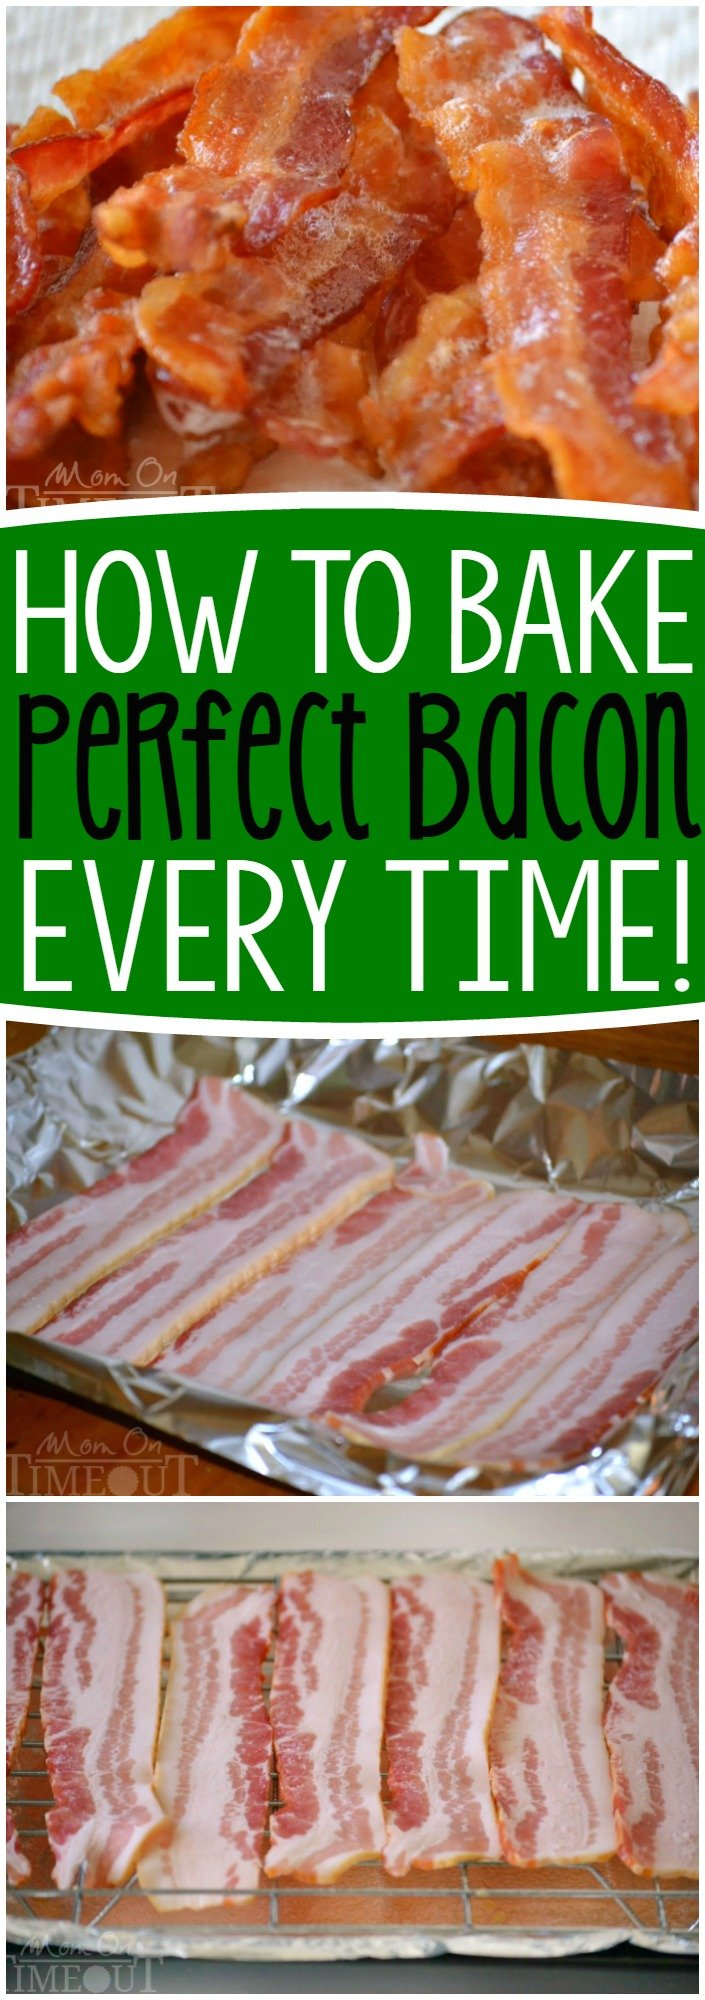 baking-bacon-recipe-collage